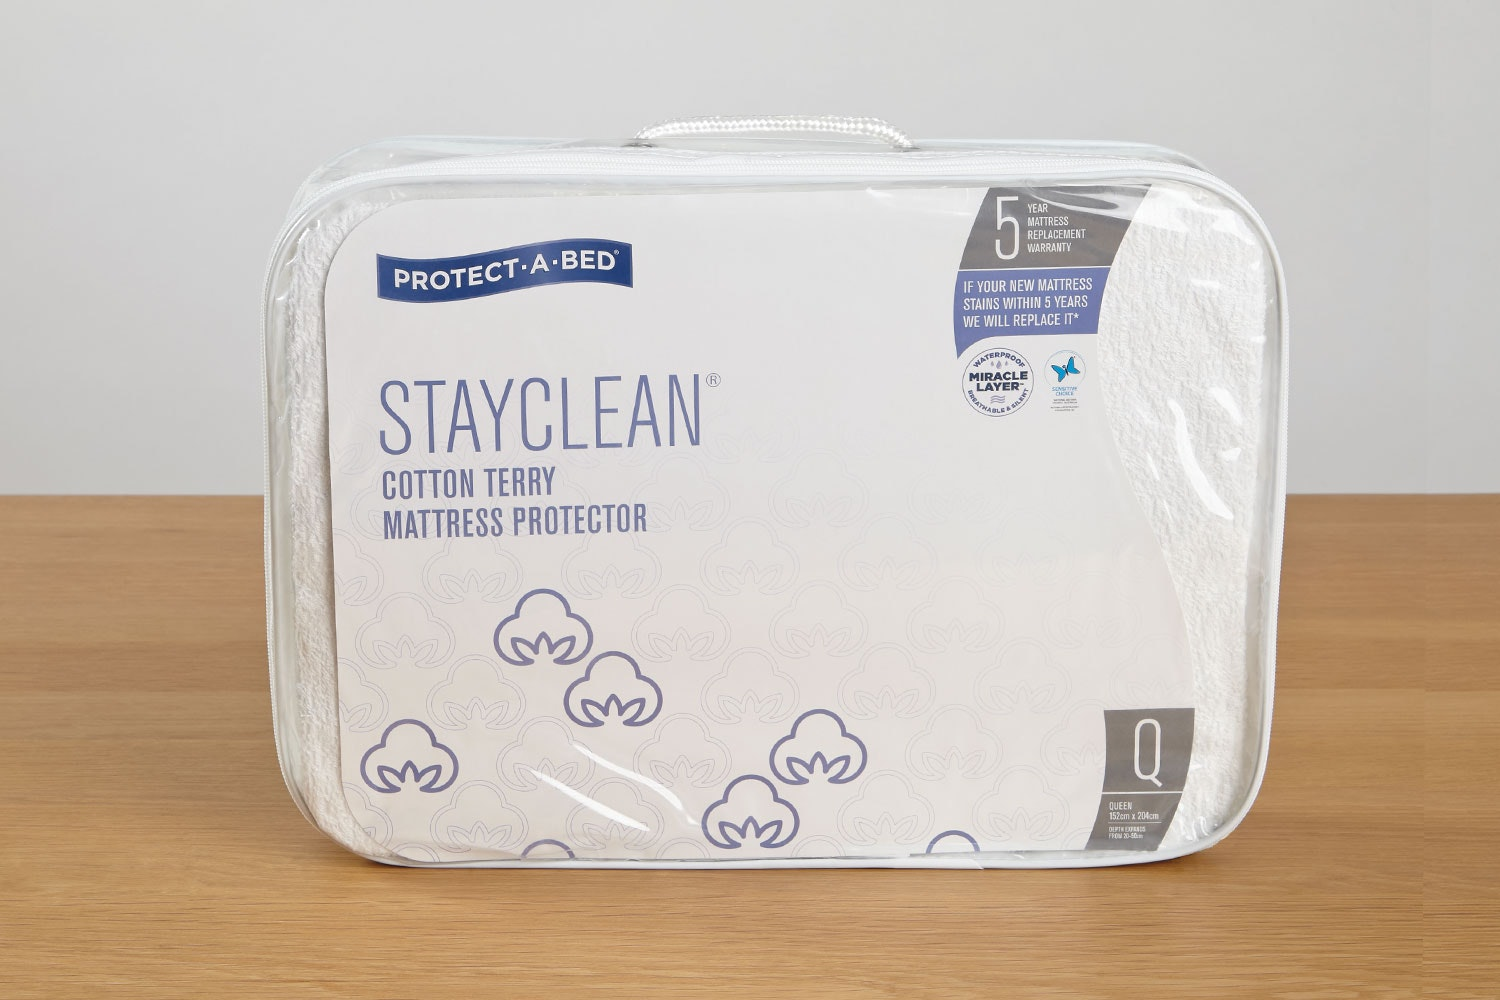 Stayclean Mattress Protector by Protect-A-Bed